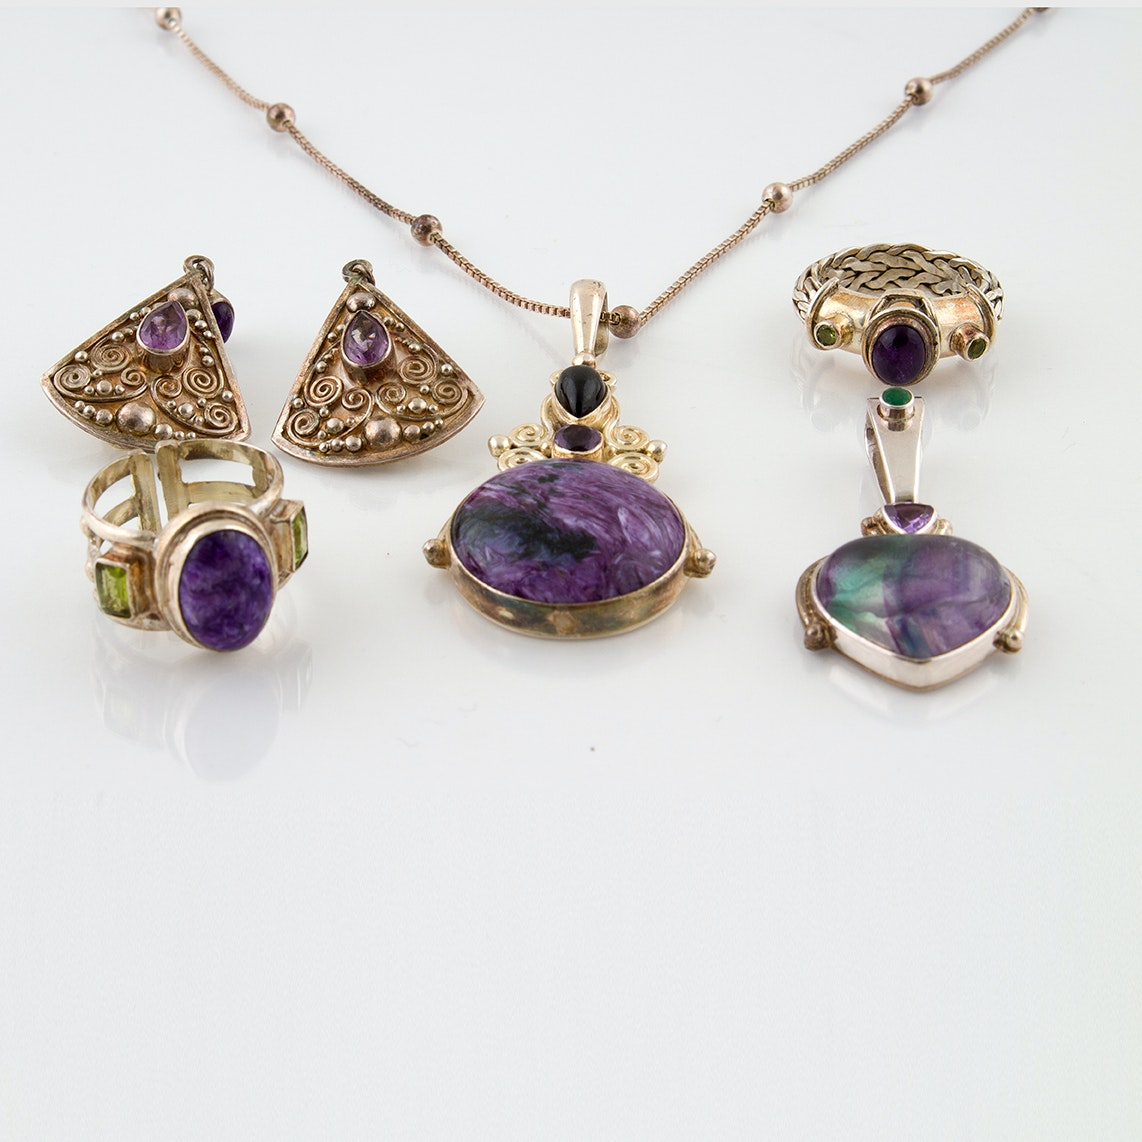 Sajen Sterling Silver Jewelry Featuring Peridot, Amethyst, and Oiled Emeralds